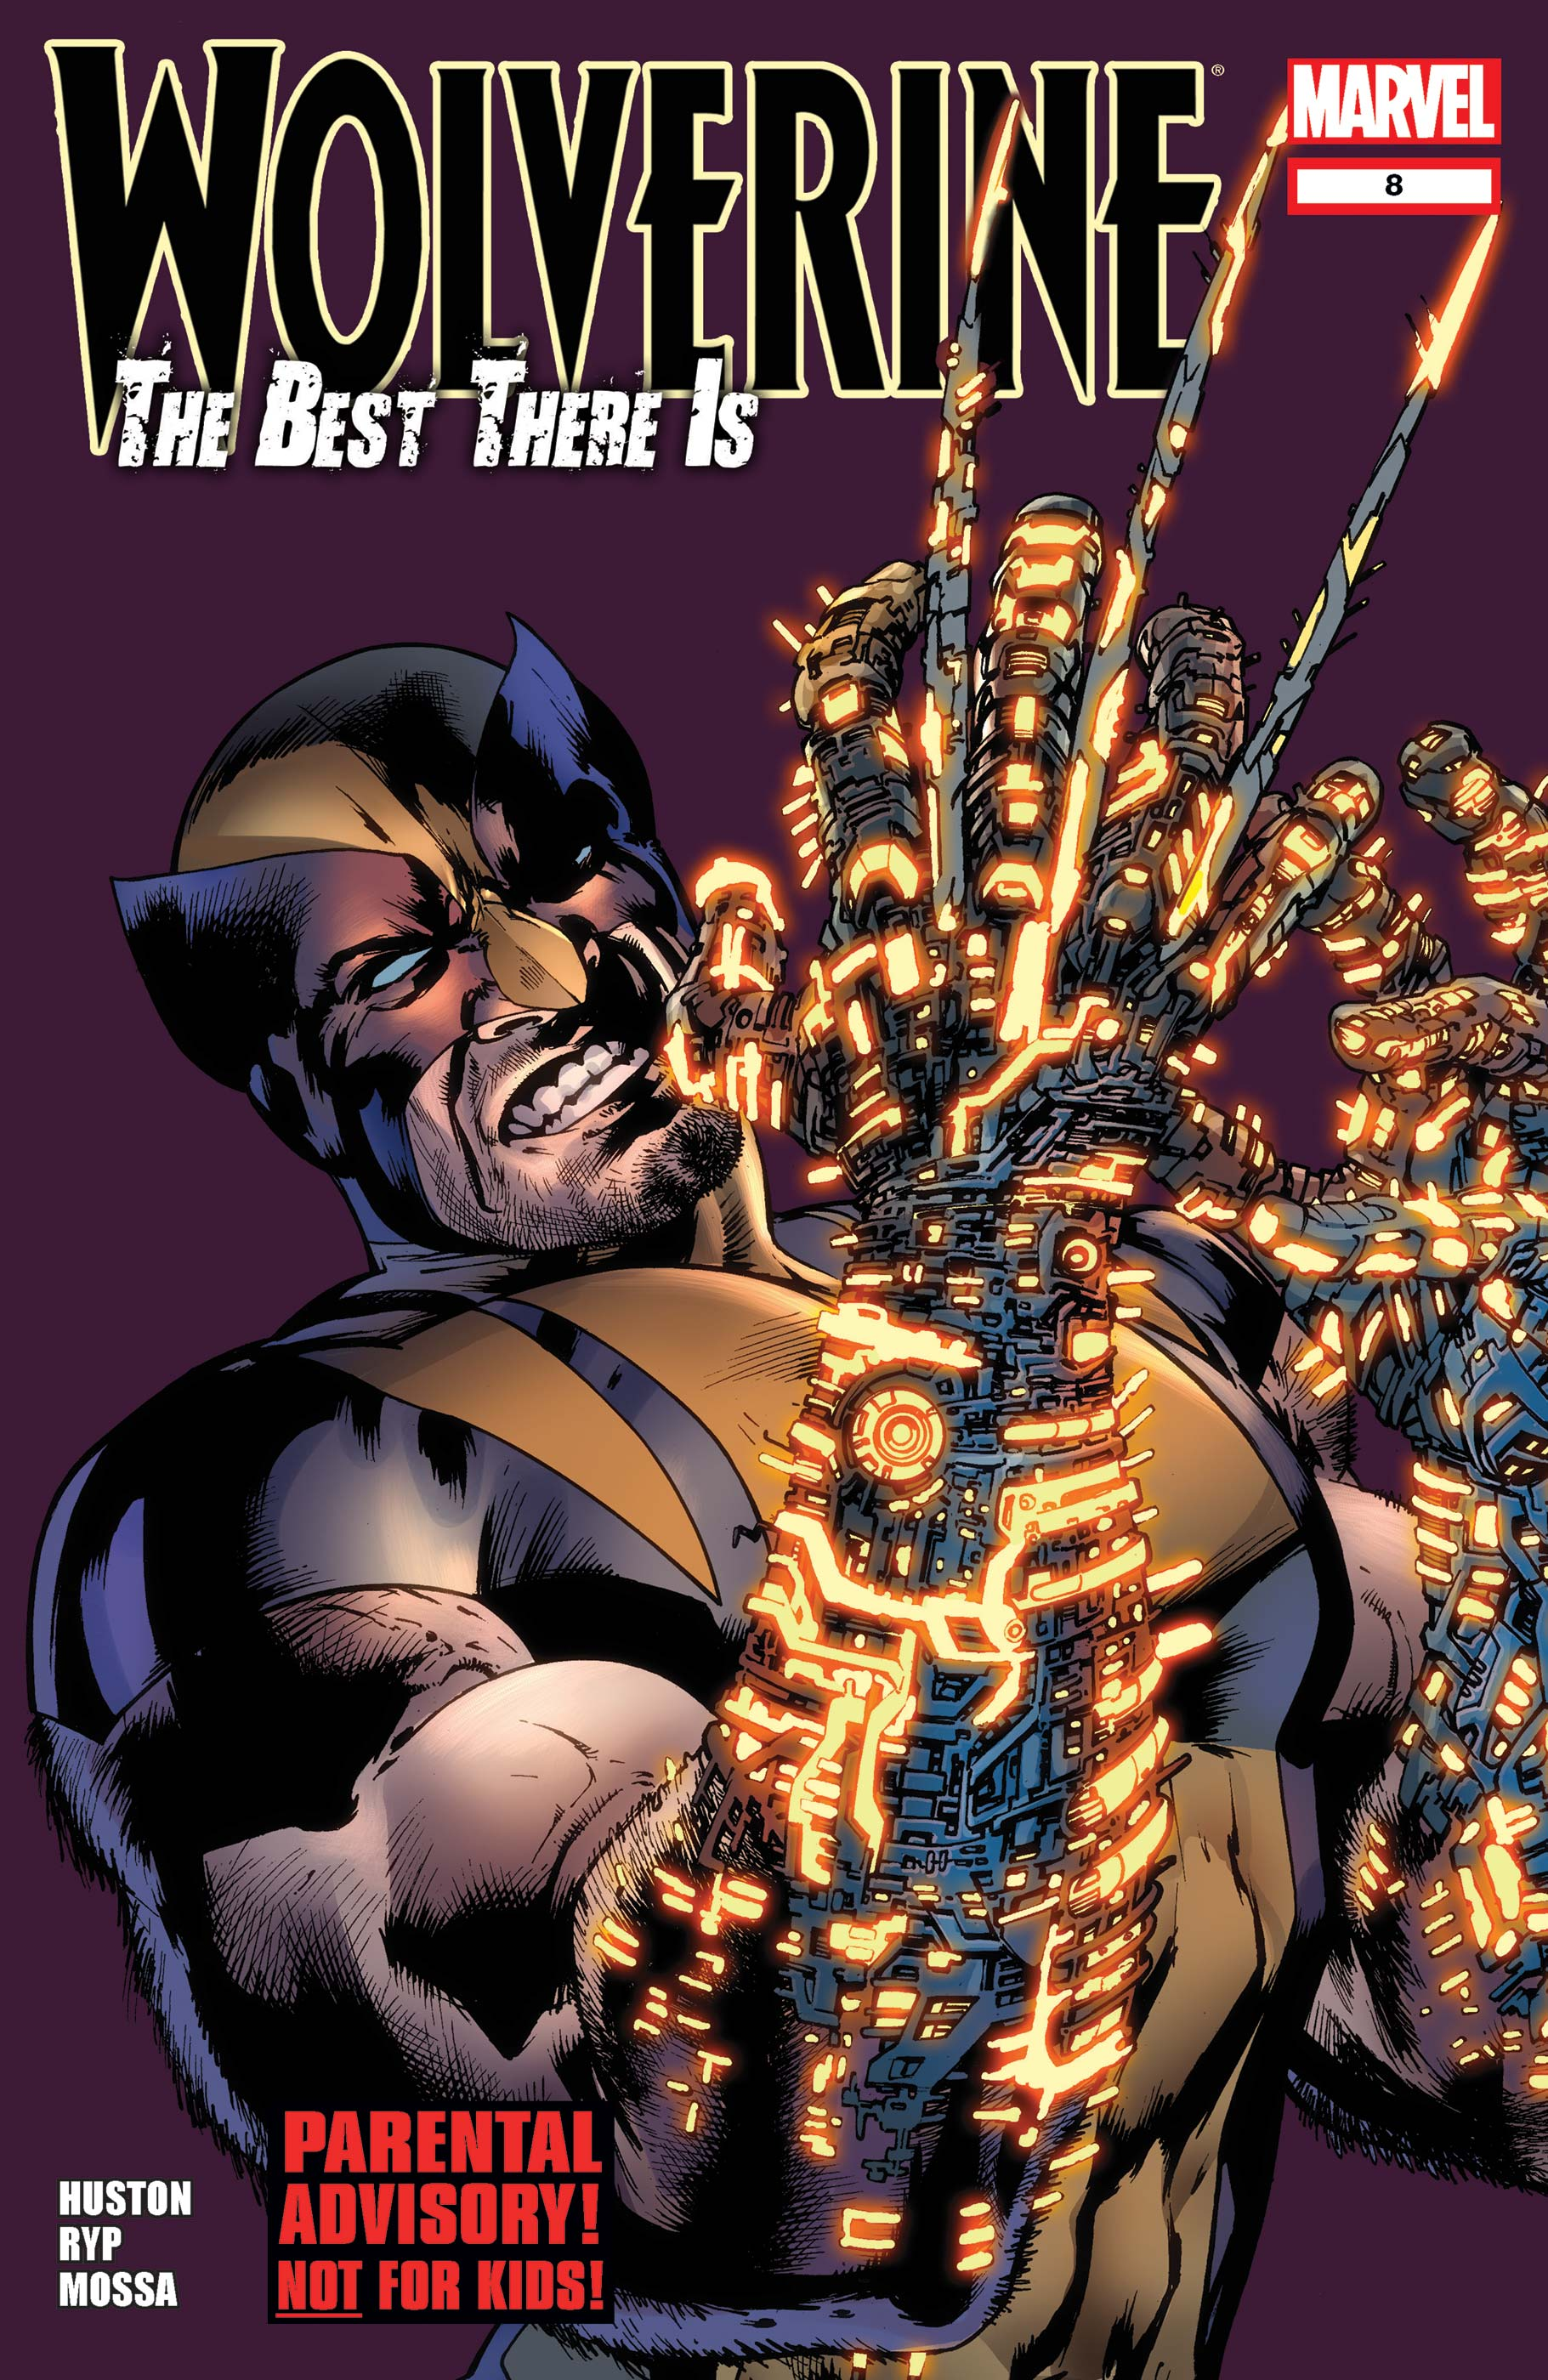 Wolverine: The Best There Is (2010) #8